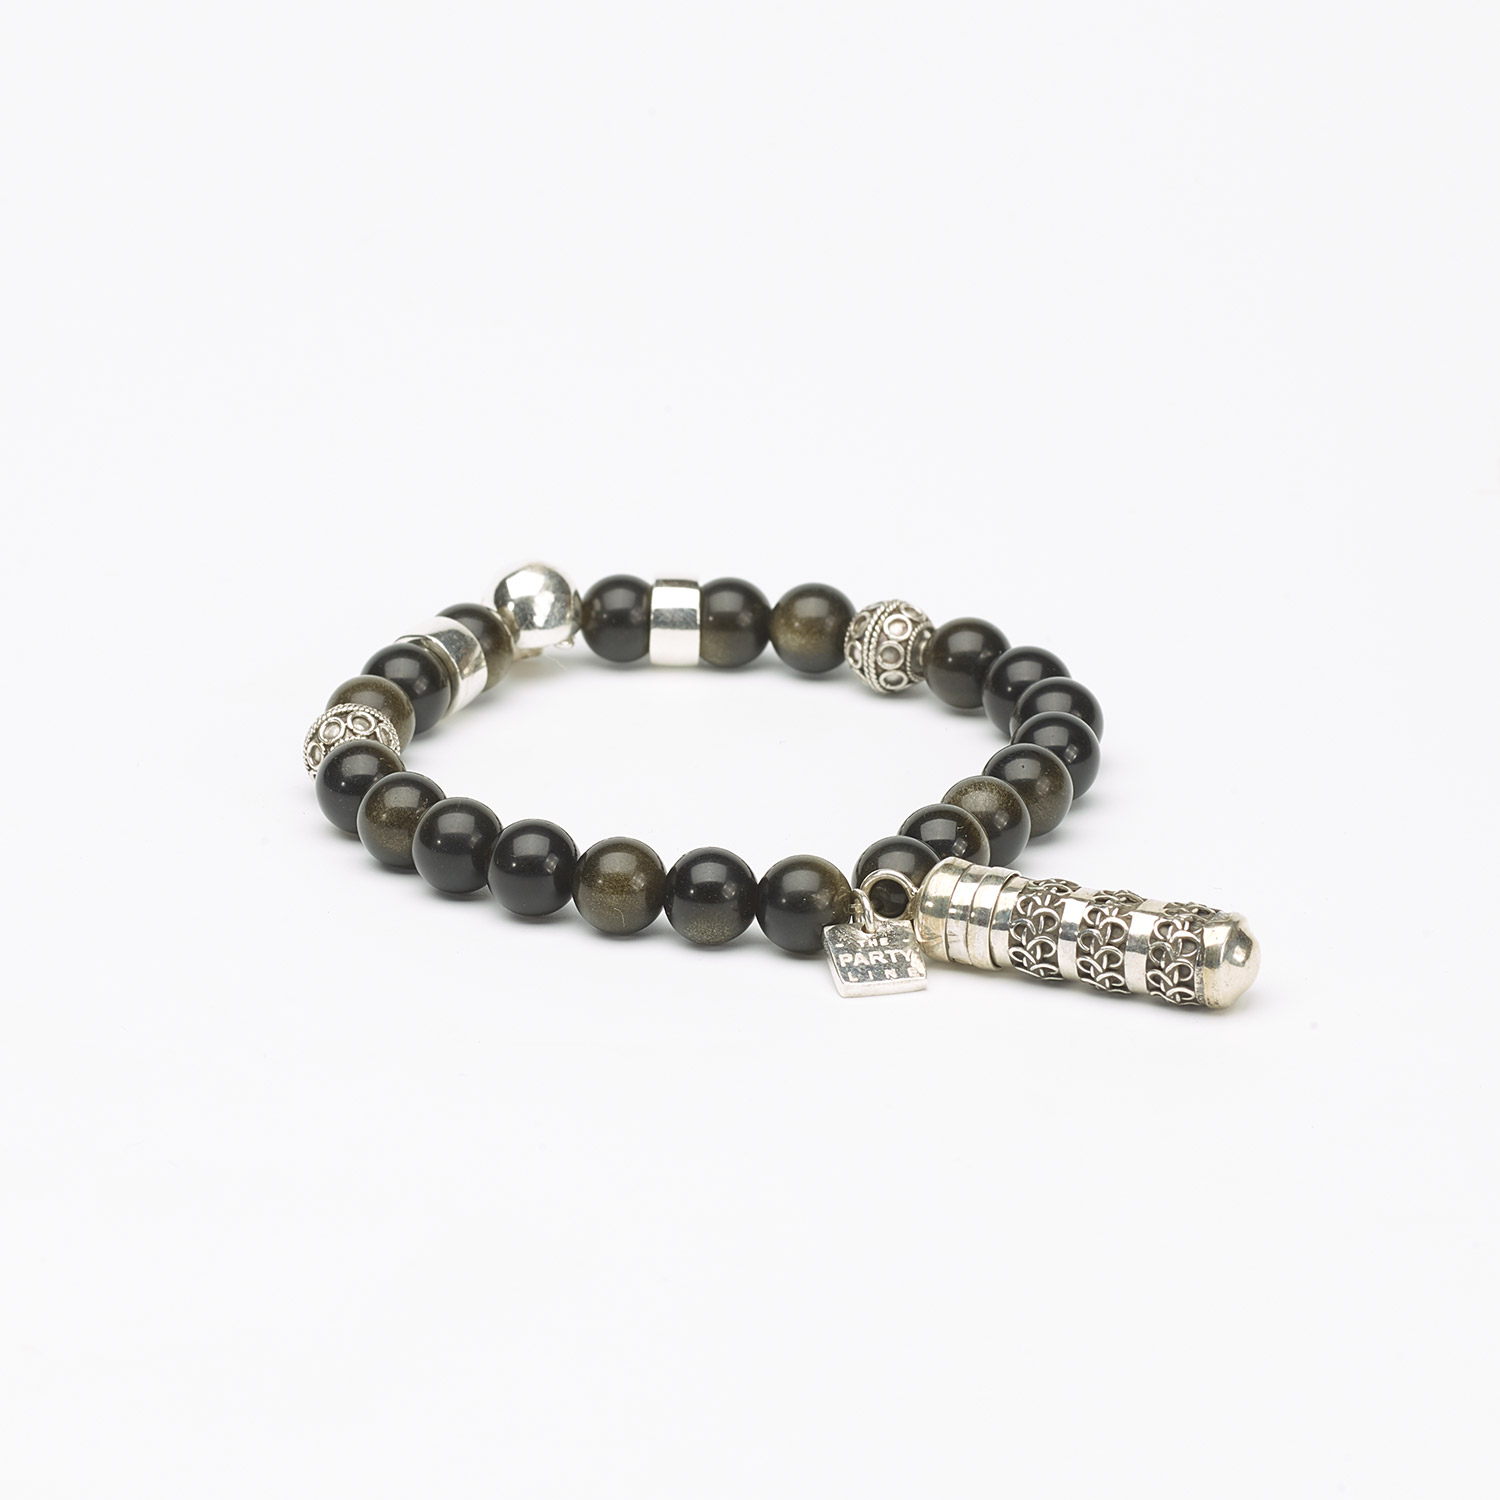 Buddhist Bracelet with Obsidian stone and a Secret box, in silver